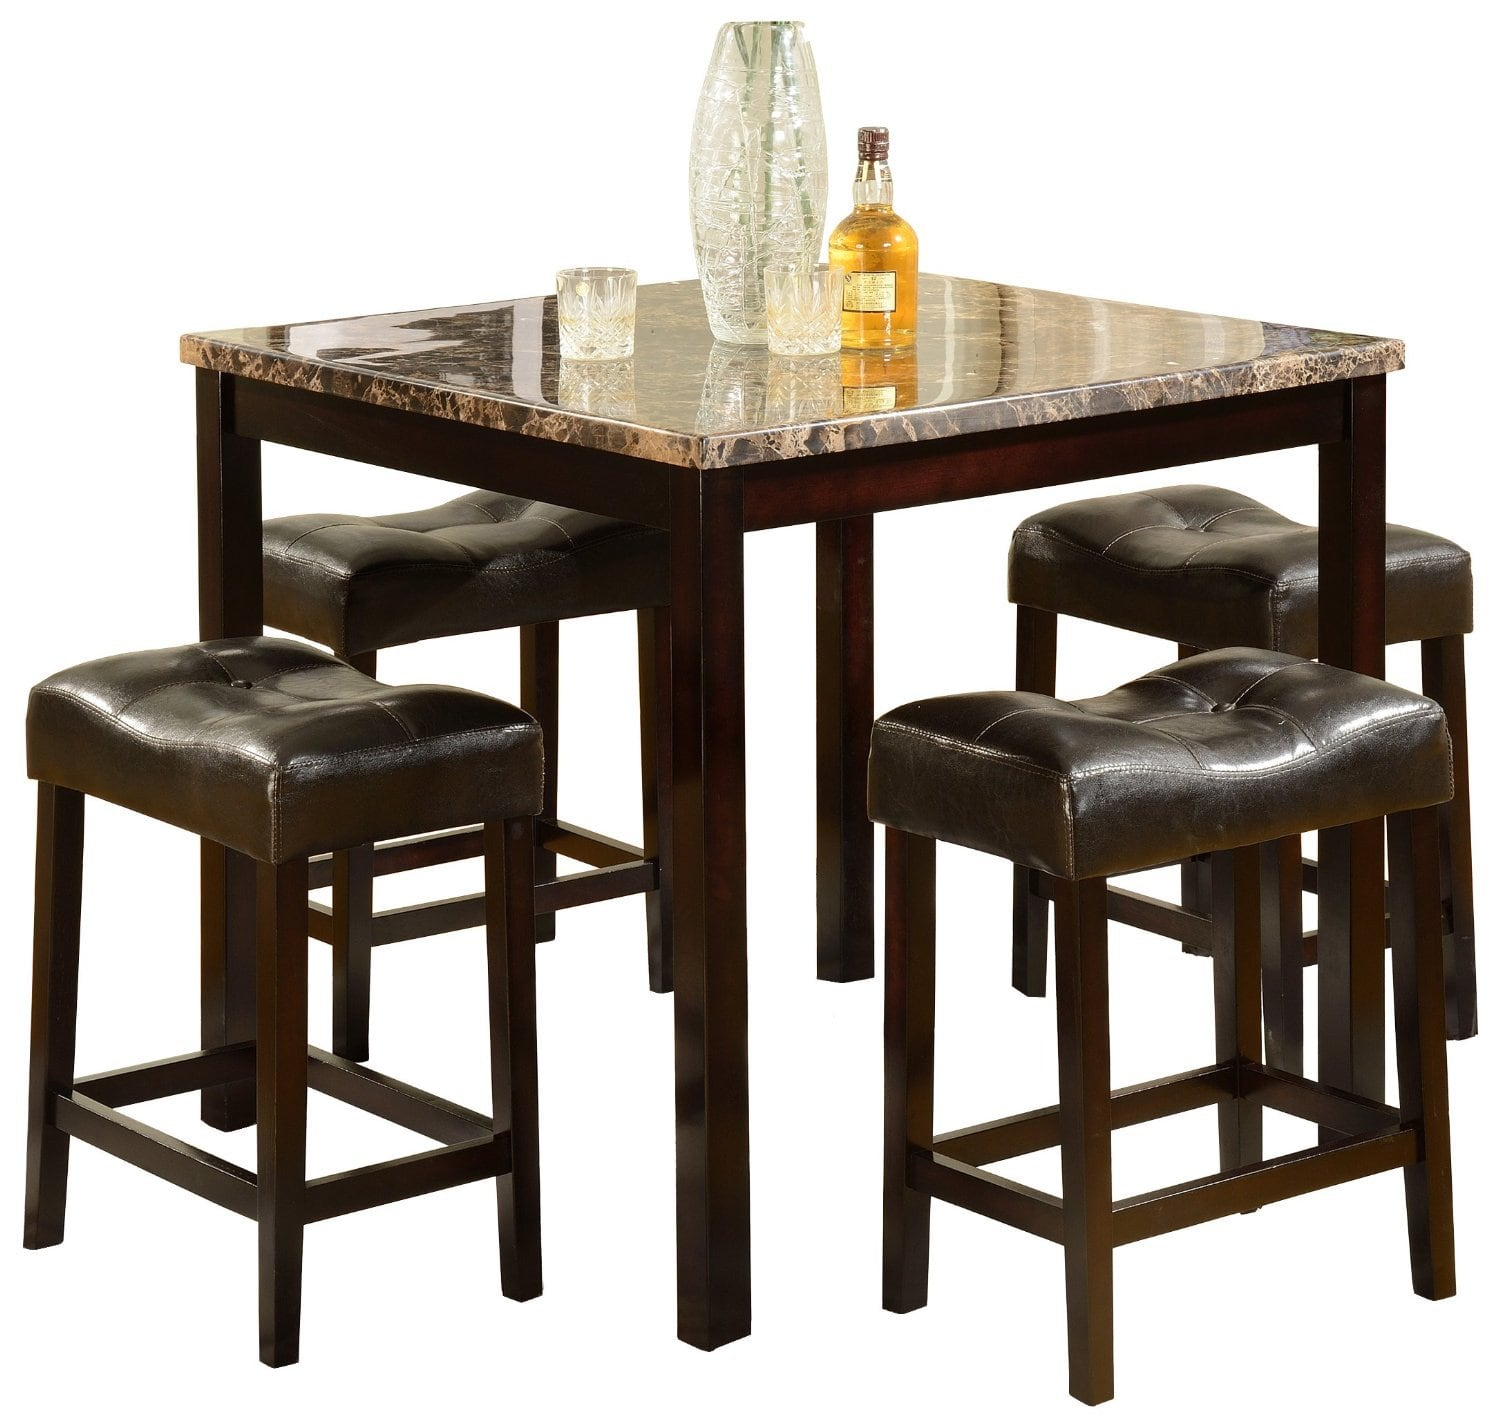 Wooden Bar Stool Table Set